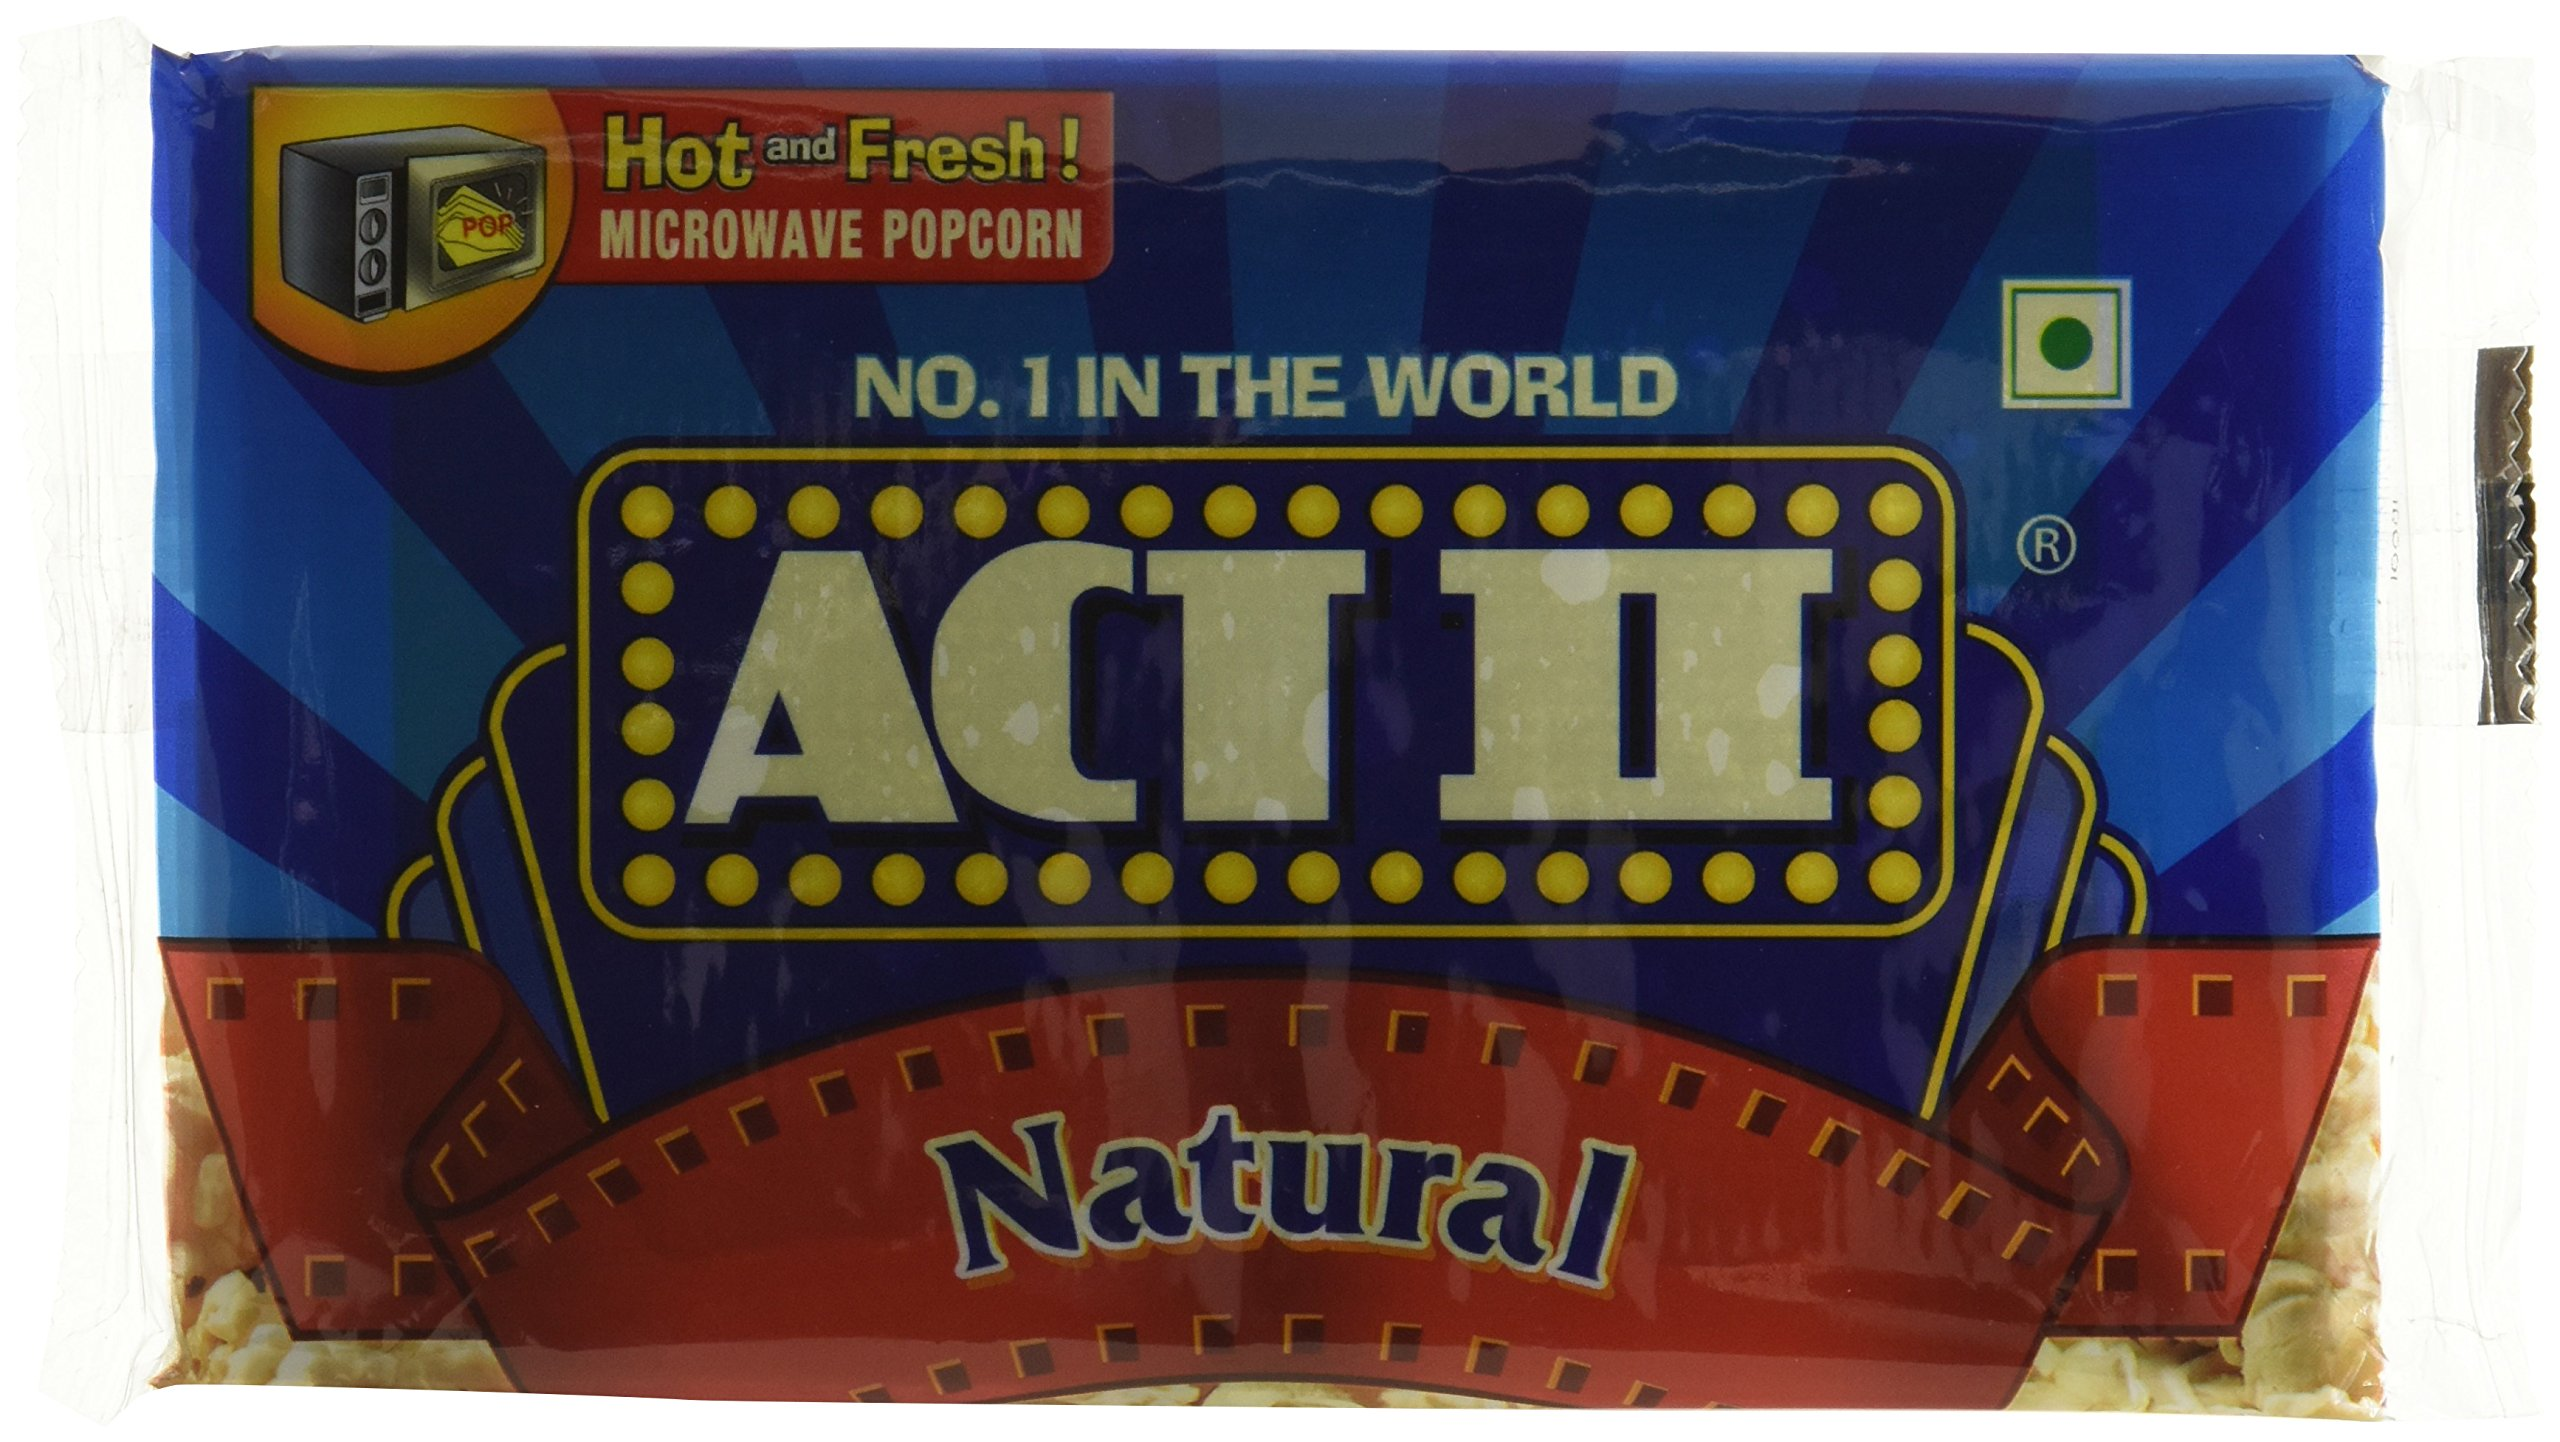 Pack Of 1 ACT II Microwave Popcorn Natural, 99g - India